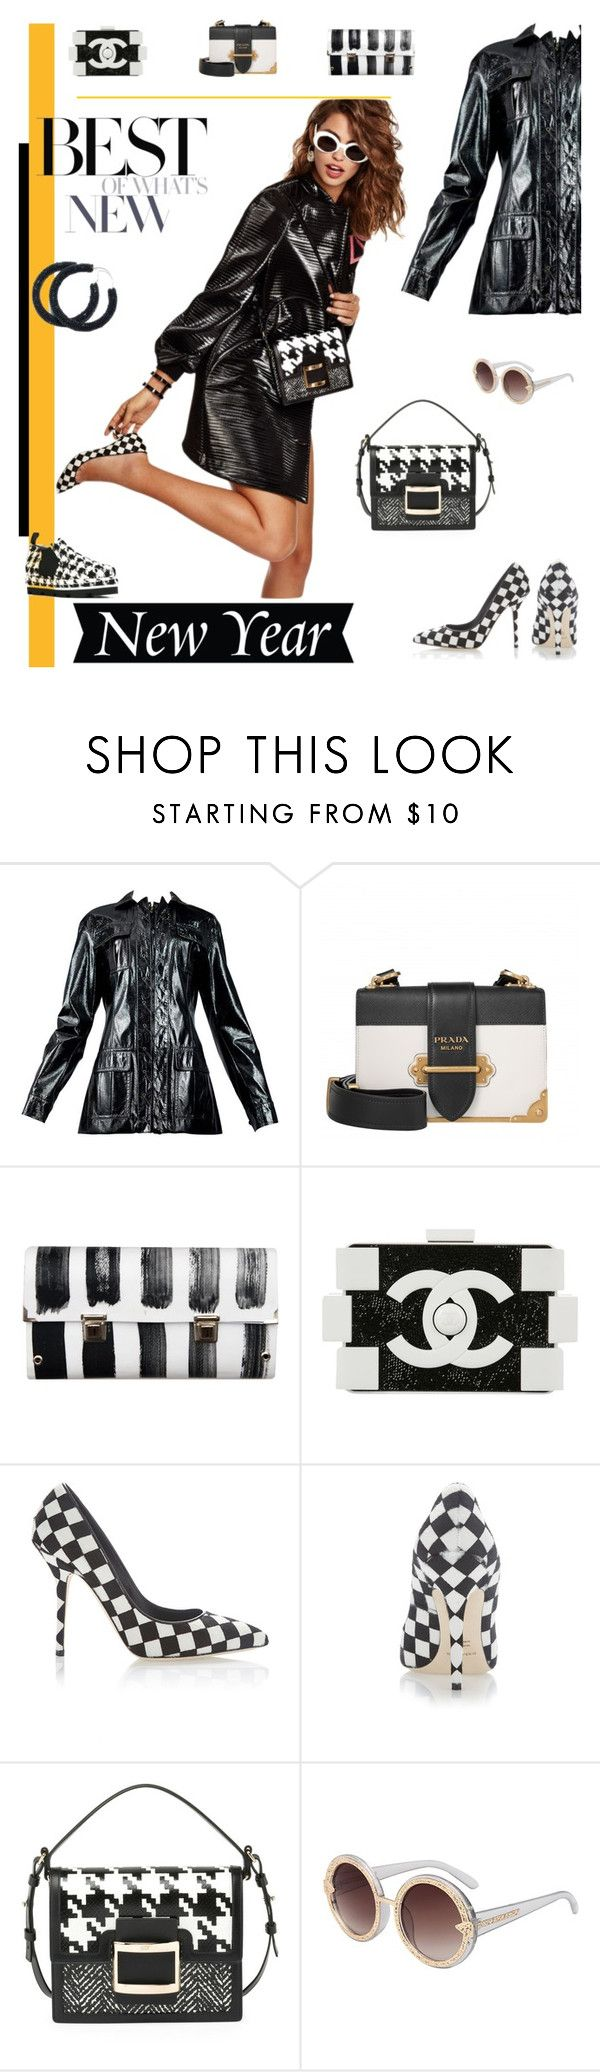 """""""Patent Leather and Checks"""" by fl4u ❤ liked on Polyvore featuring Prada, Spanaki, Chanel, Dolce&Gabbana, Roger Vivier, MSGM, men's fashion, menswear, Leather and trendsreport"""